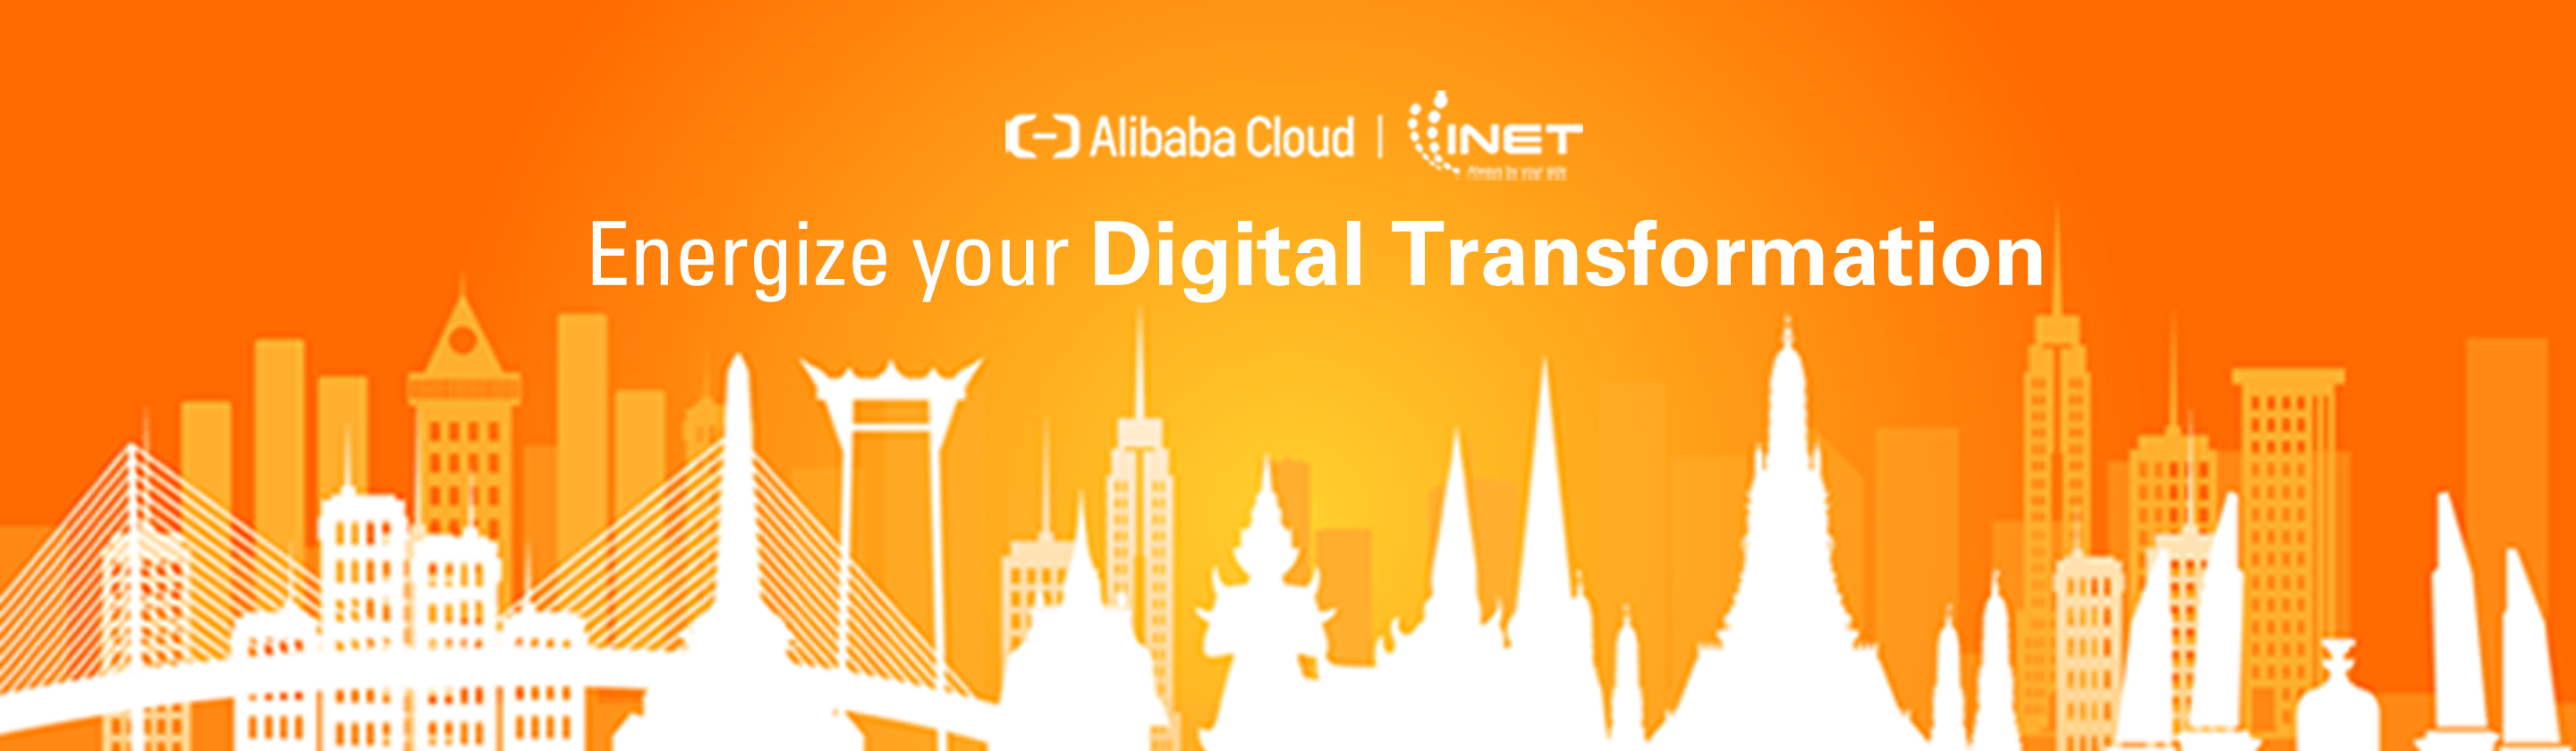 Energize your Digital Transformation